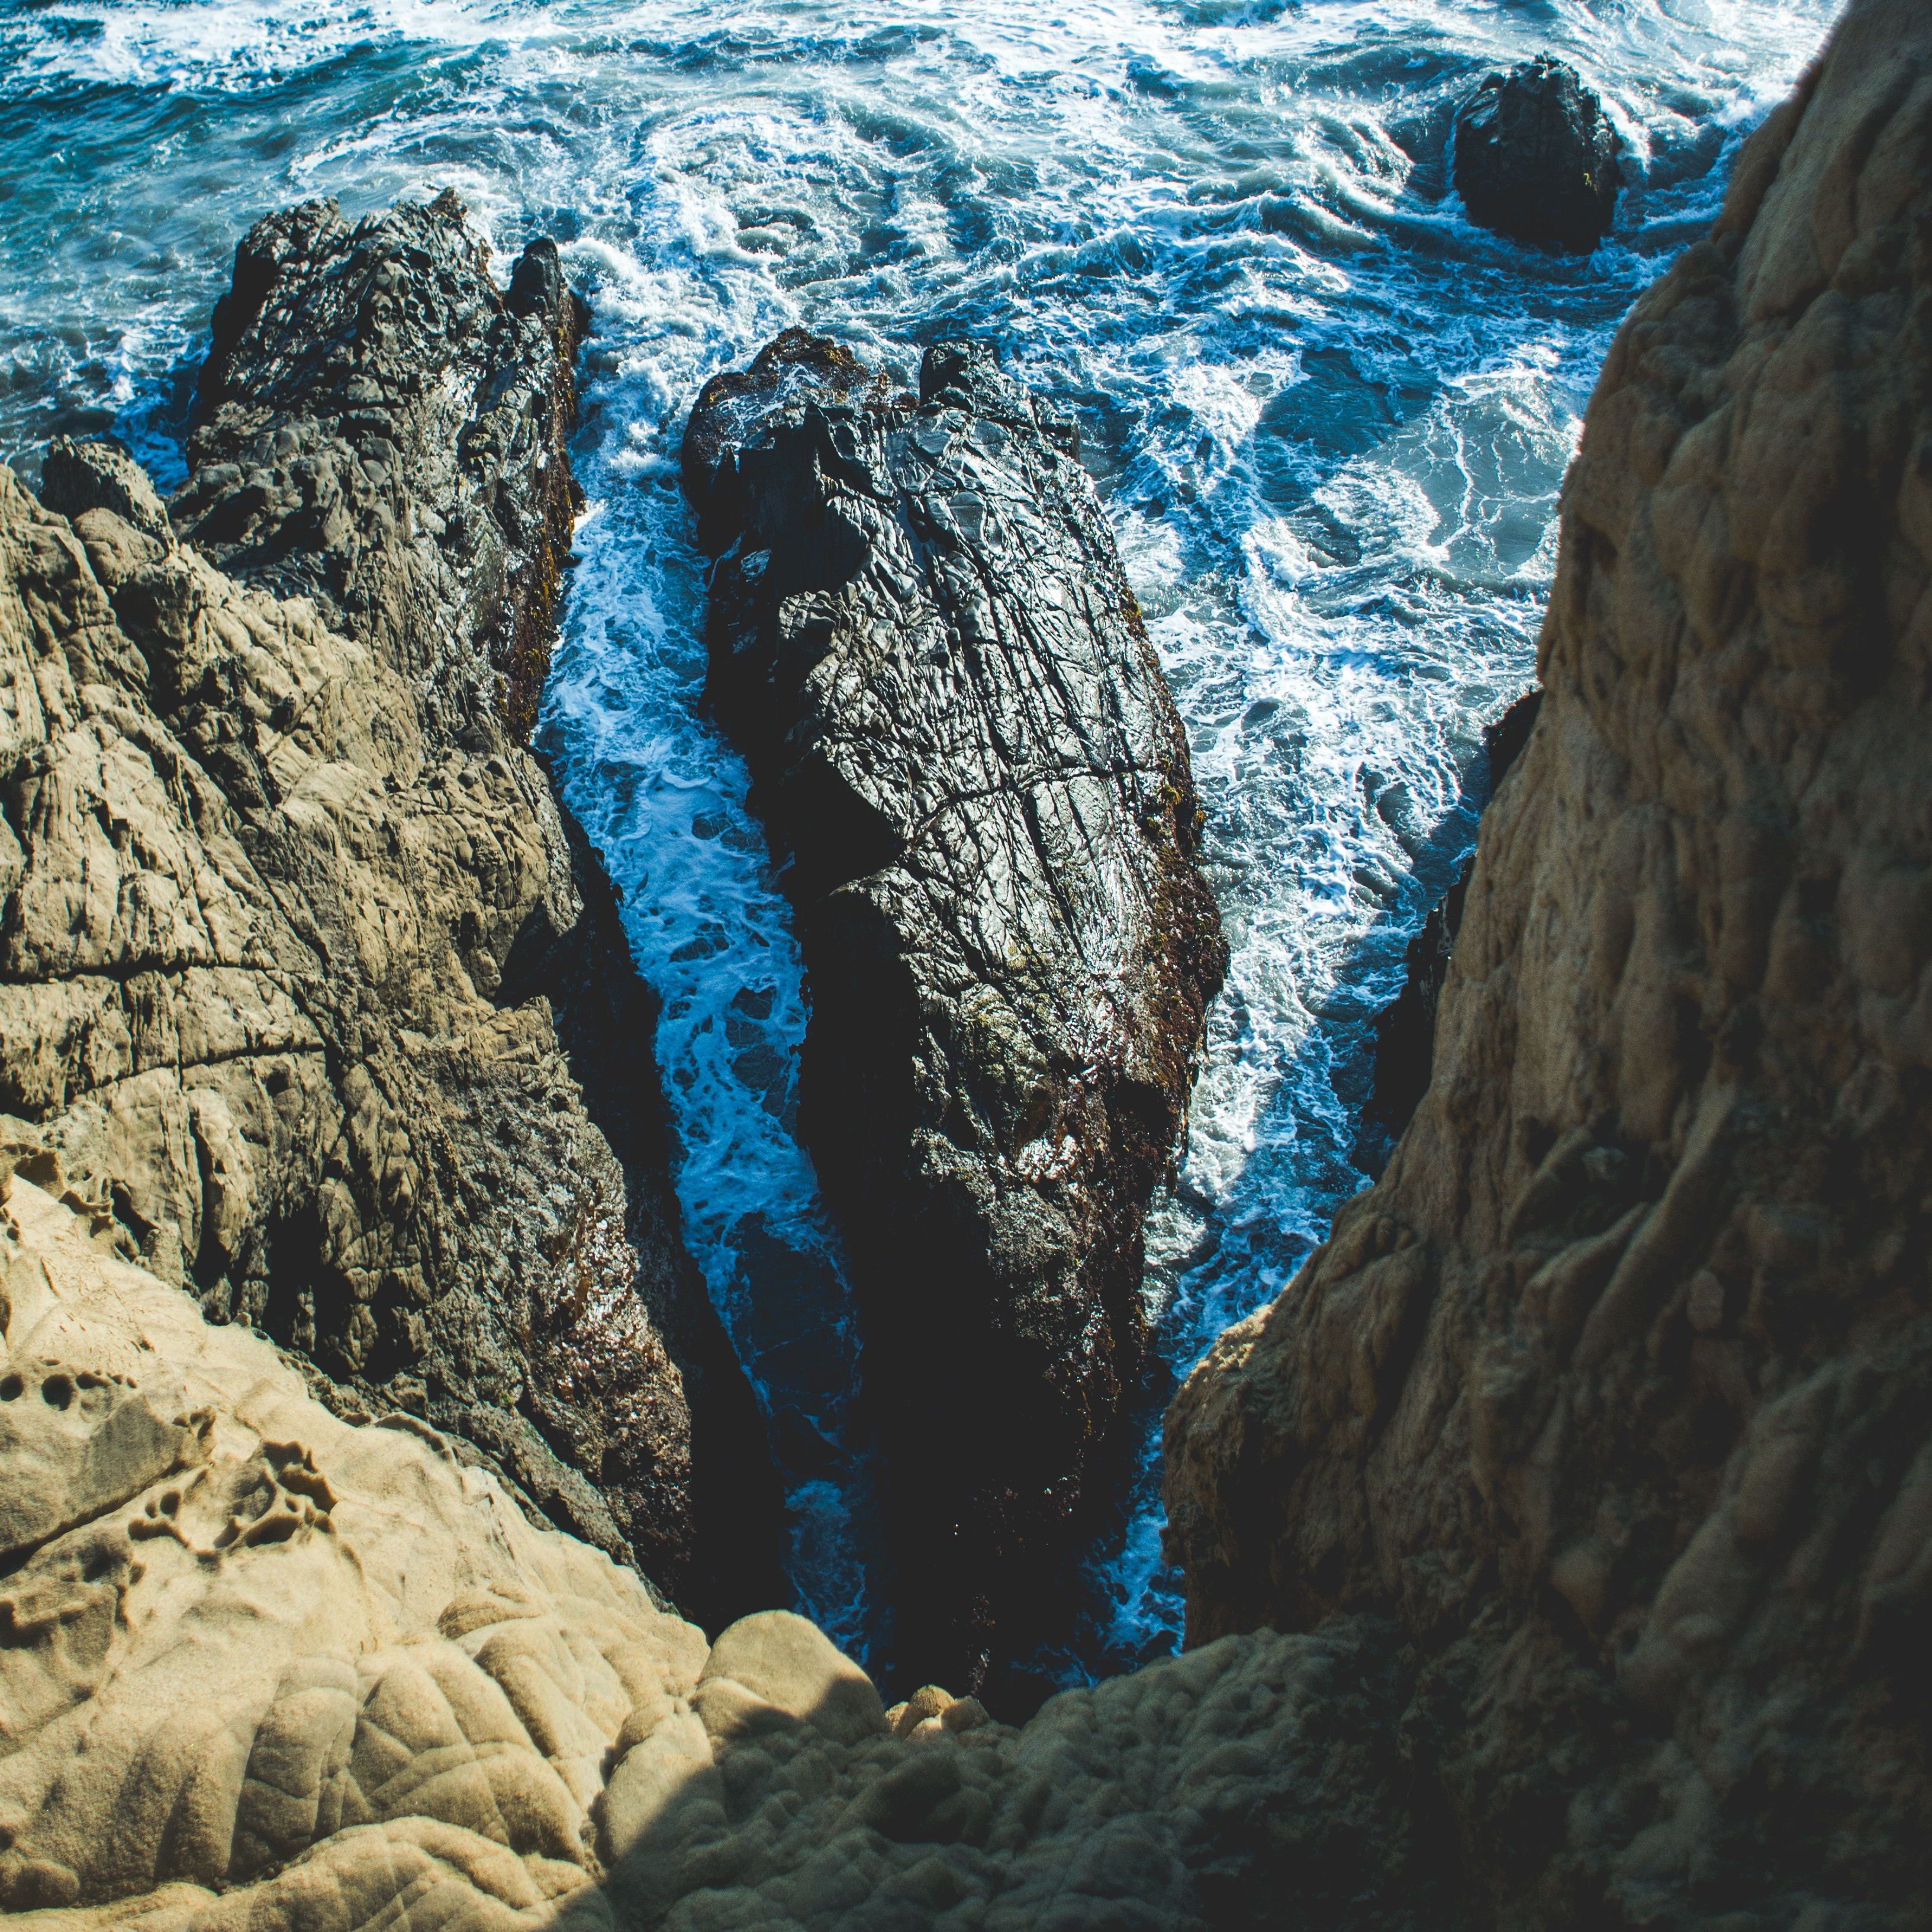 Ocean rocks viewed from a coastline cliff at Pfeiffer State Beach